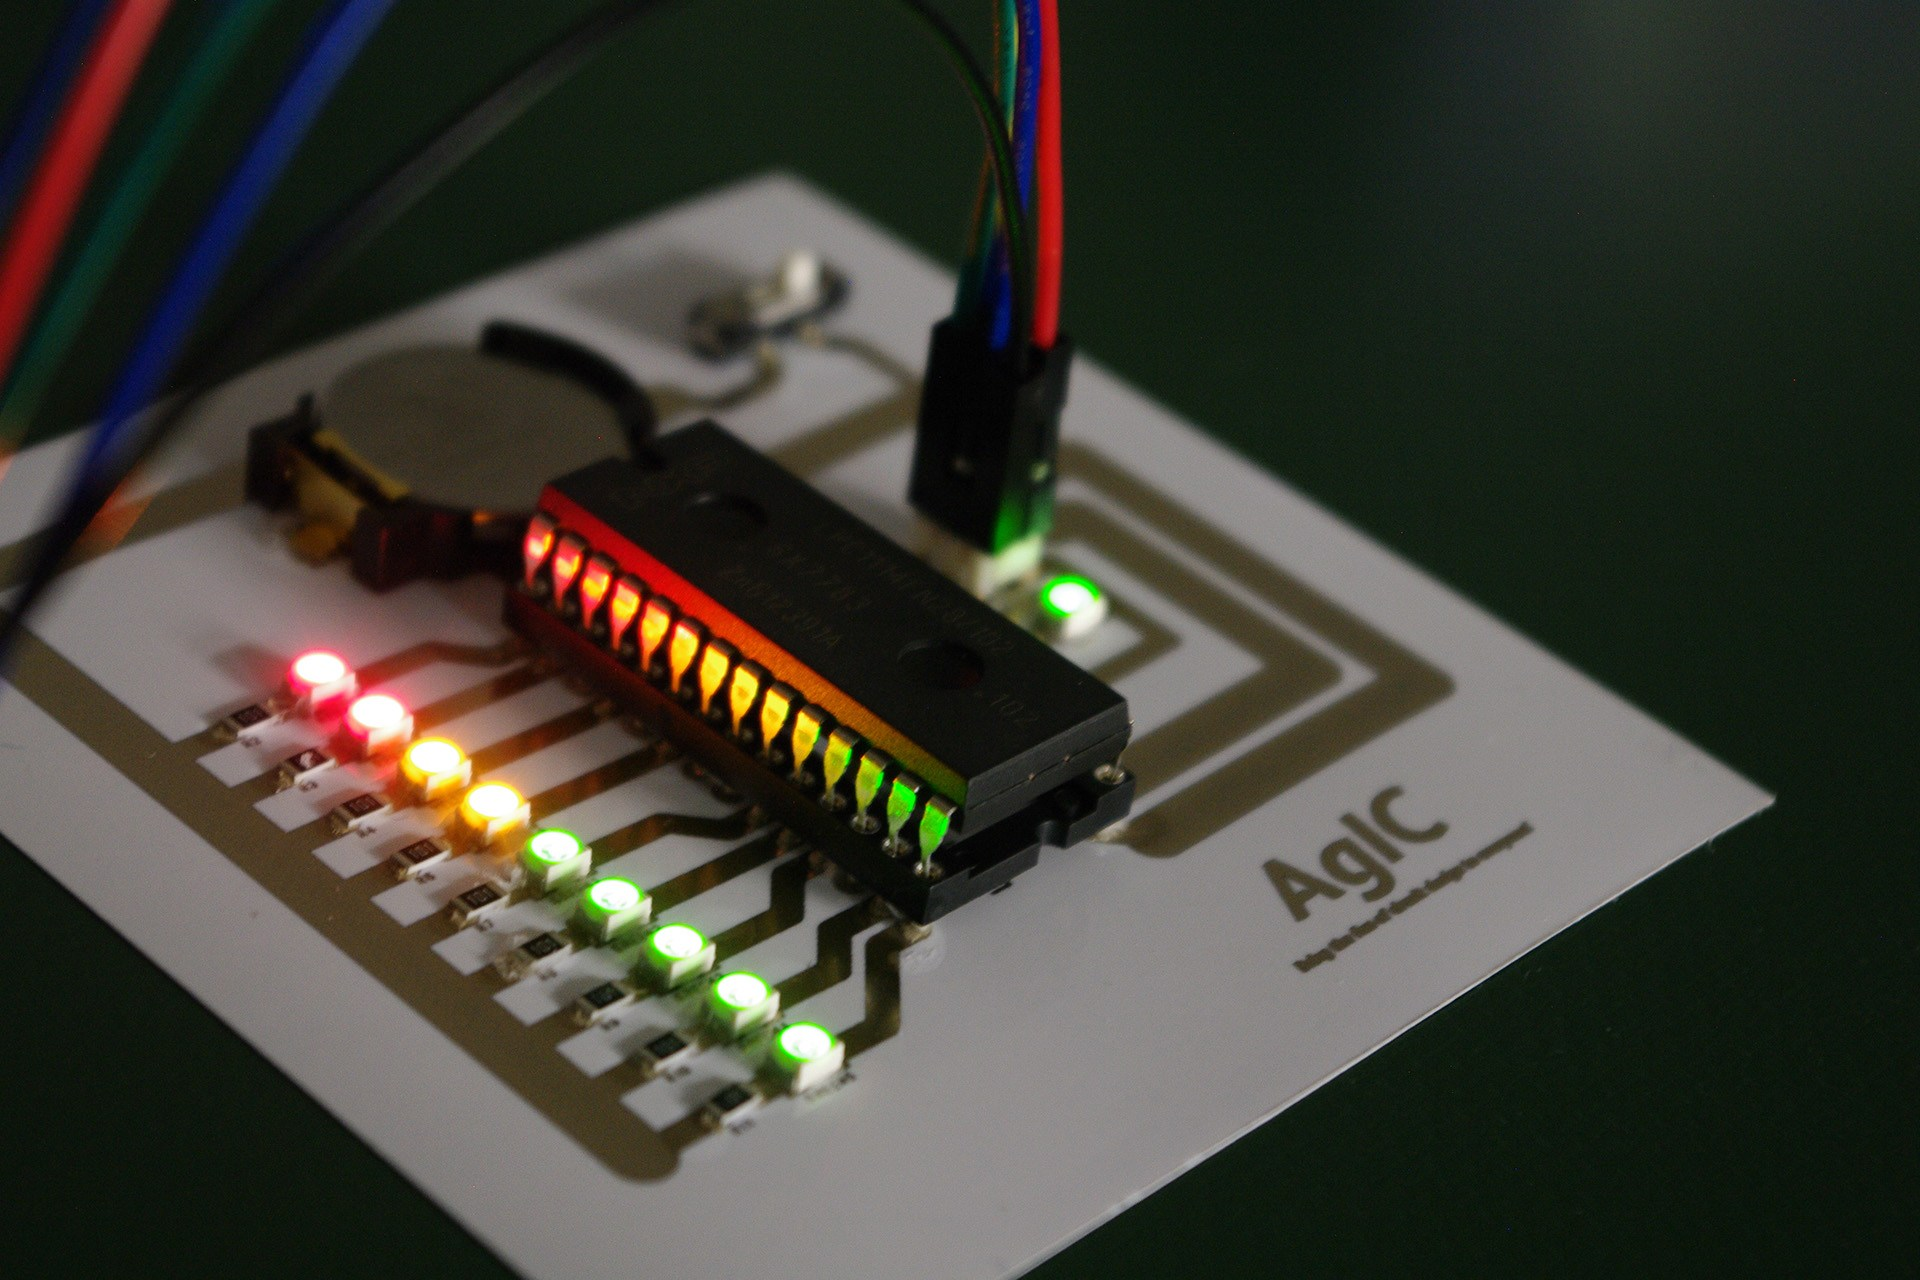 AgIC's technology uses silver nanoparticles to create homemade circuit  boards. printedcircuit